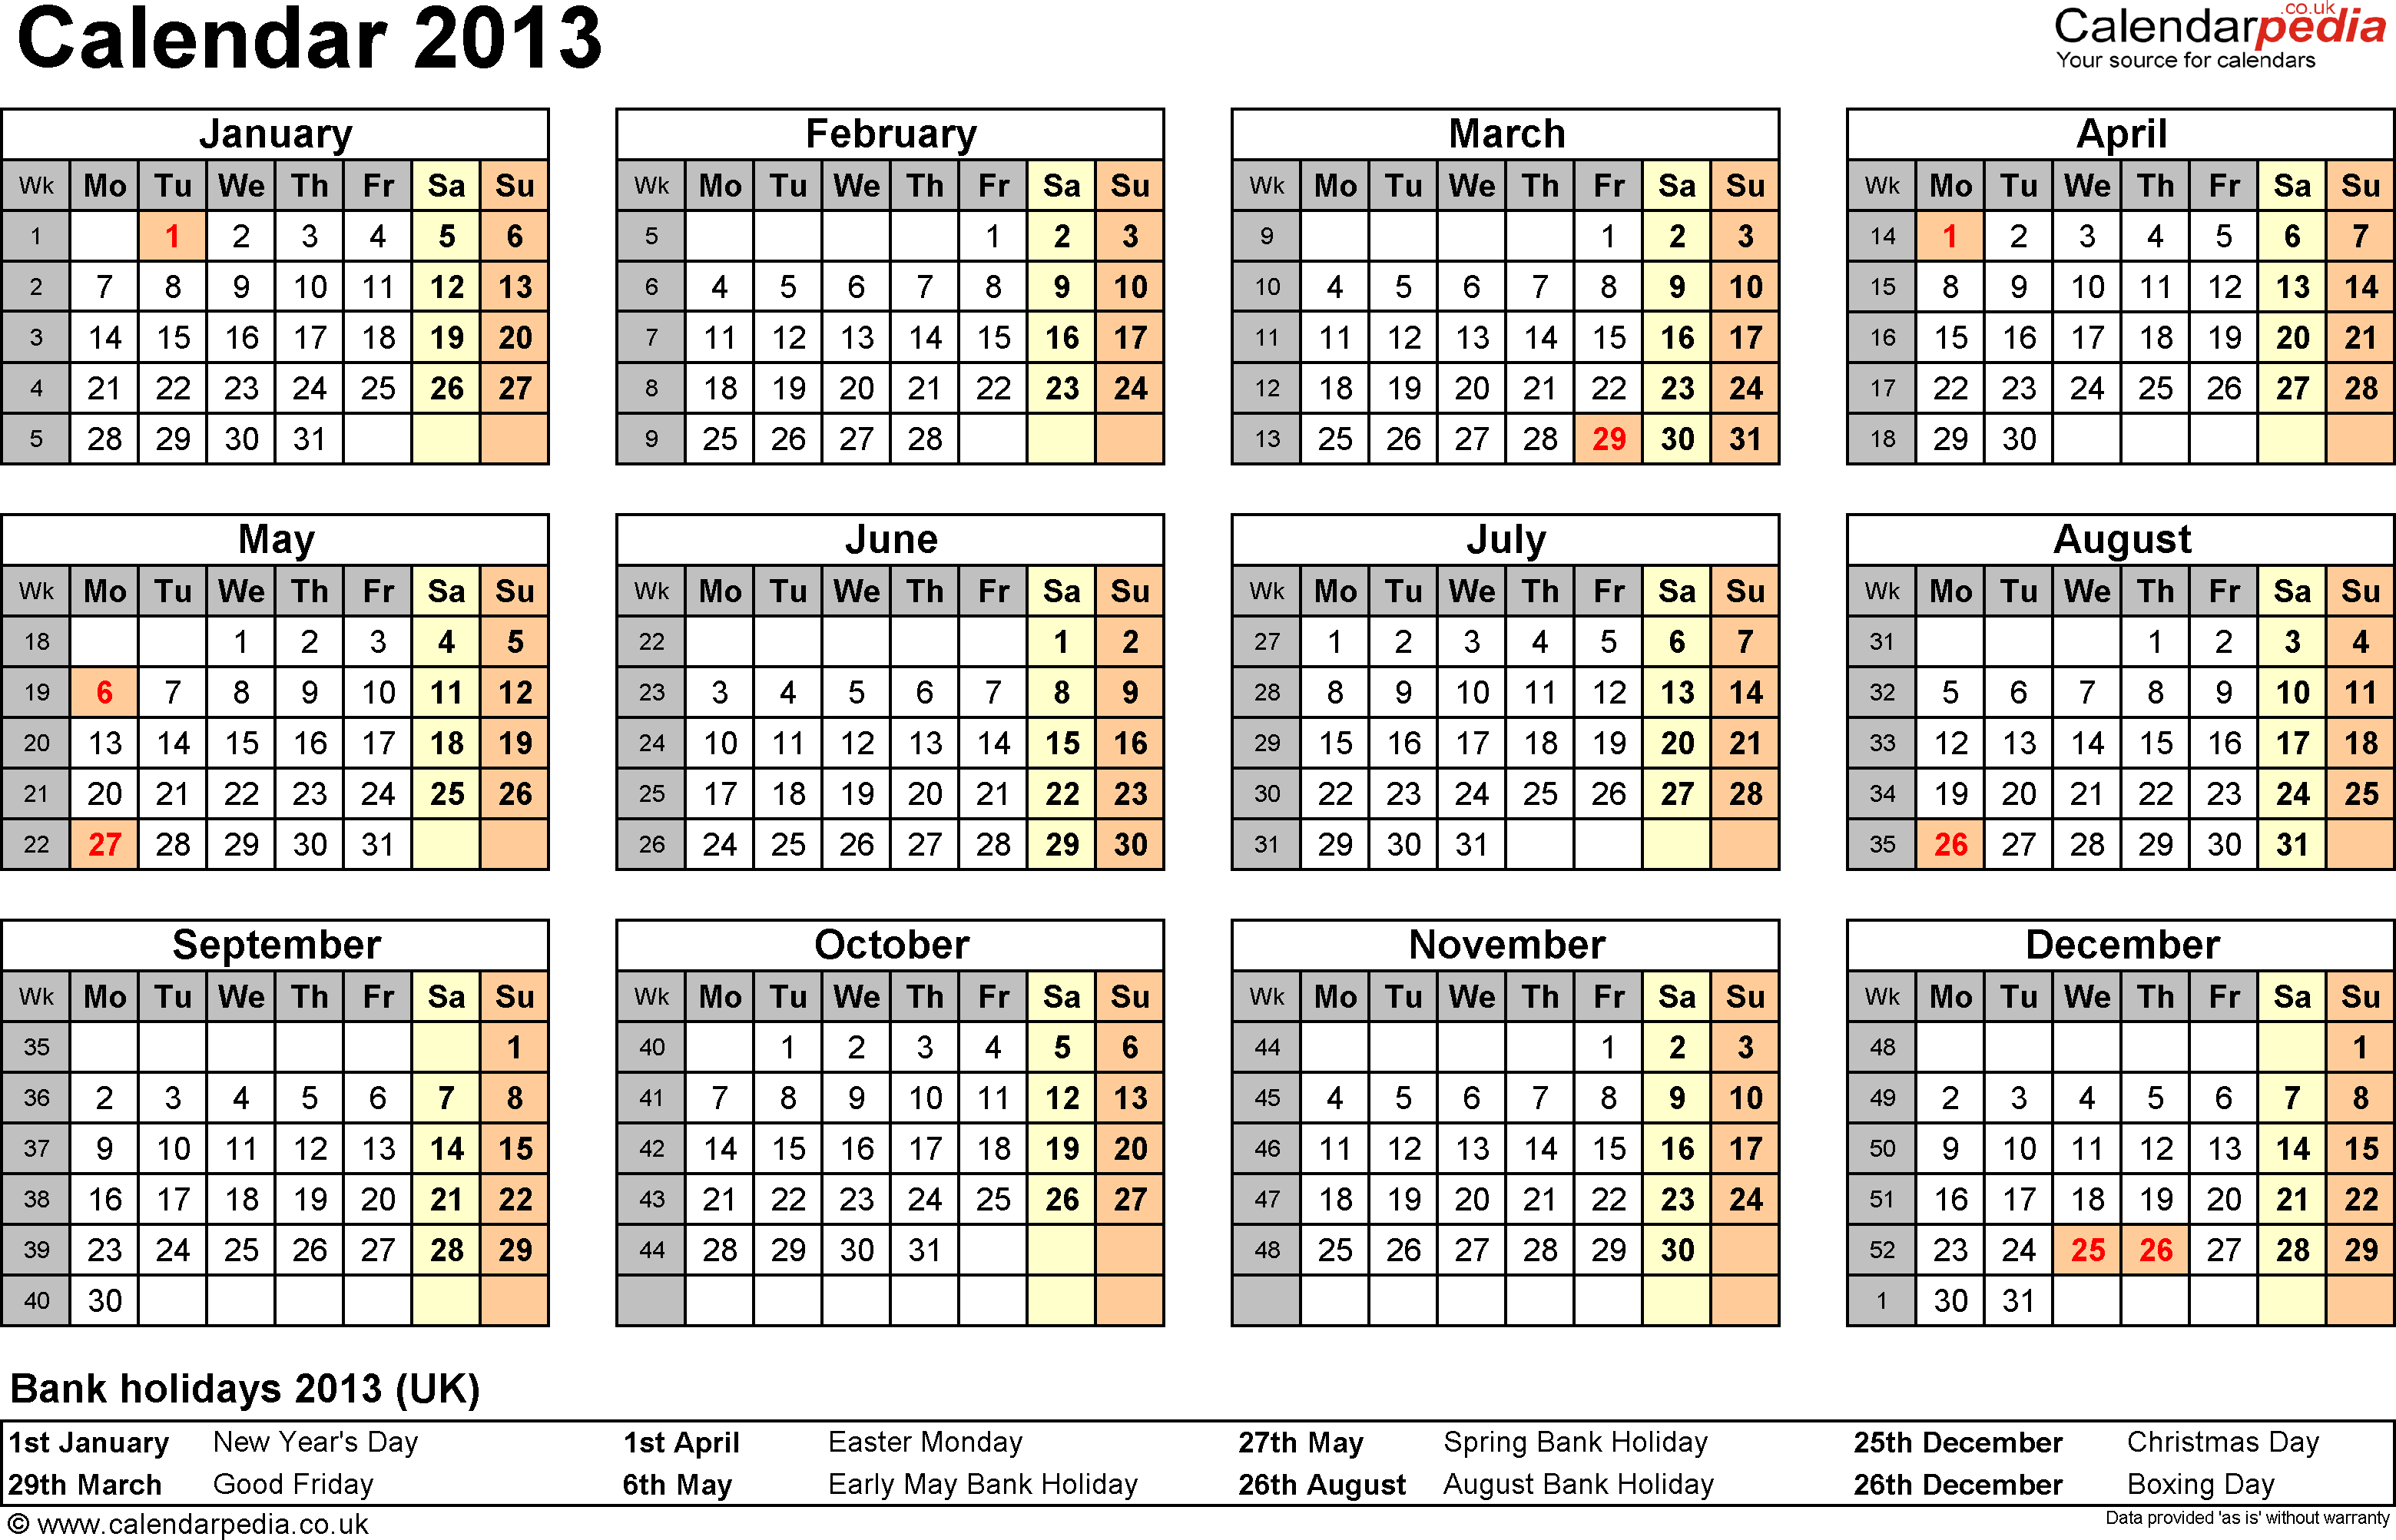 Download Template 7: Yearly calendar 2013 as Excel template, year overview, 1 page